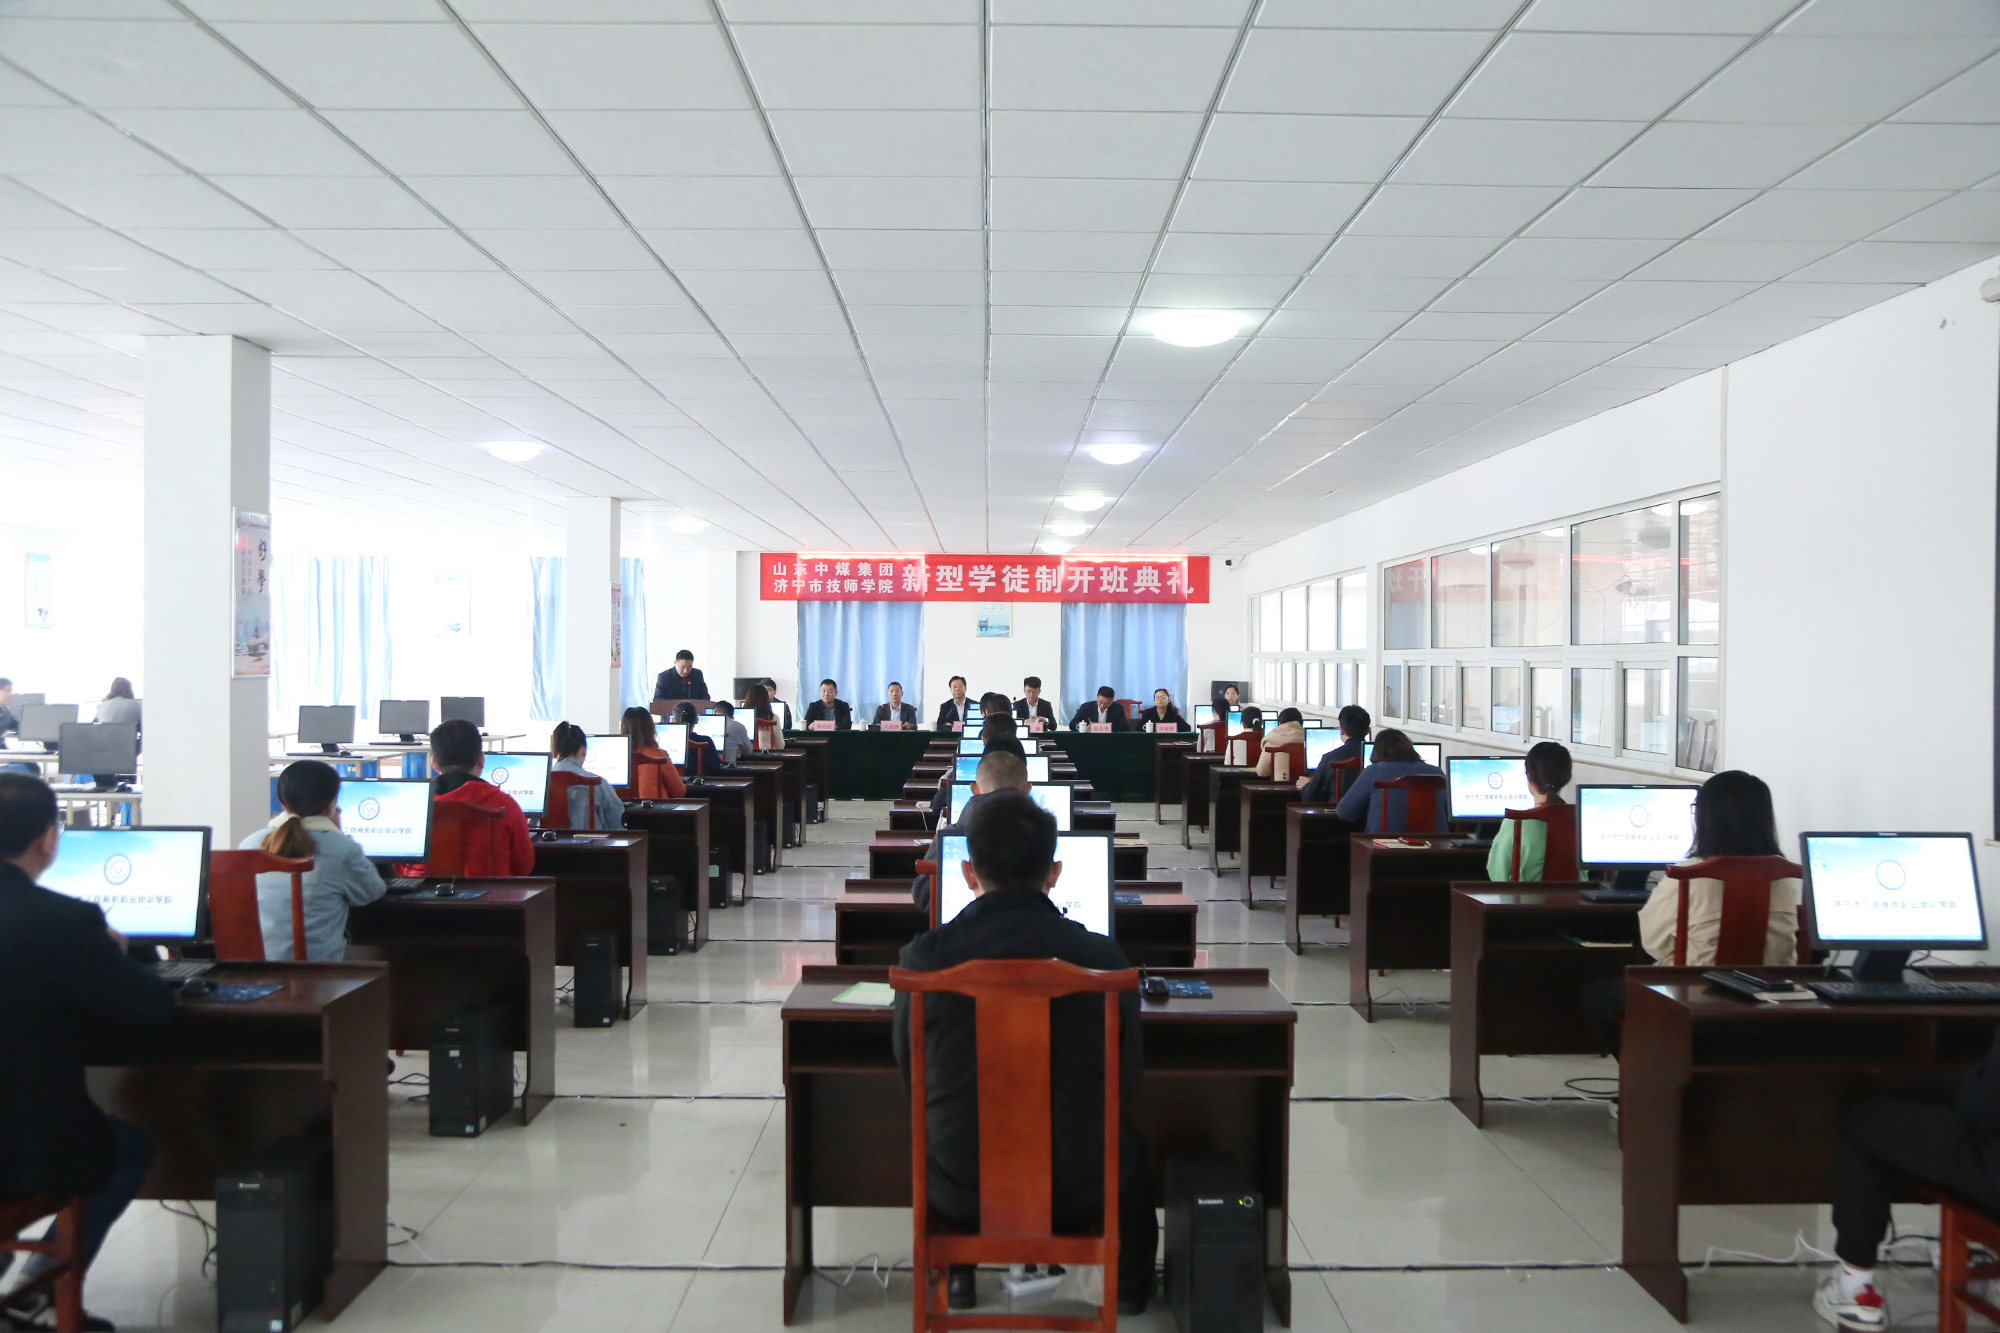 China Coal Group And Jining Technician College New Apprenticeship Training Opening Ceremony Held